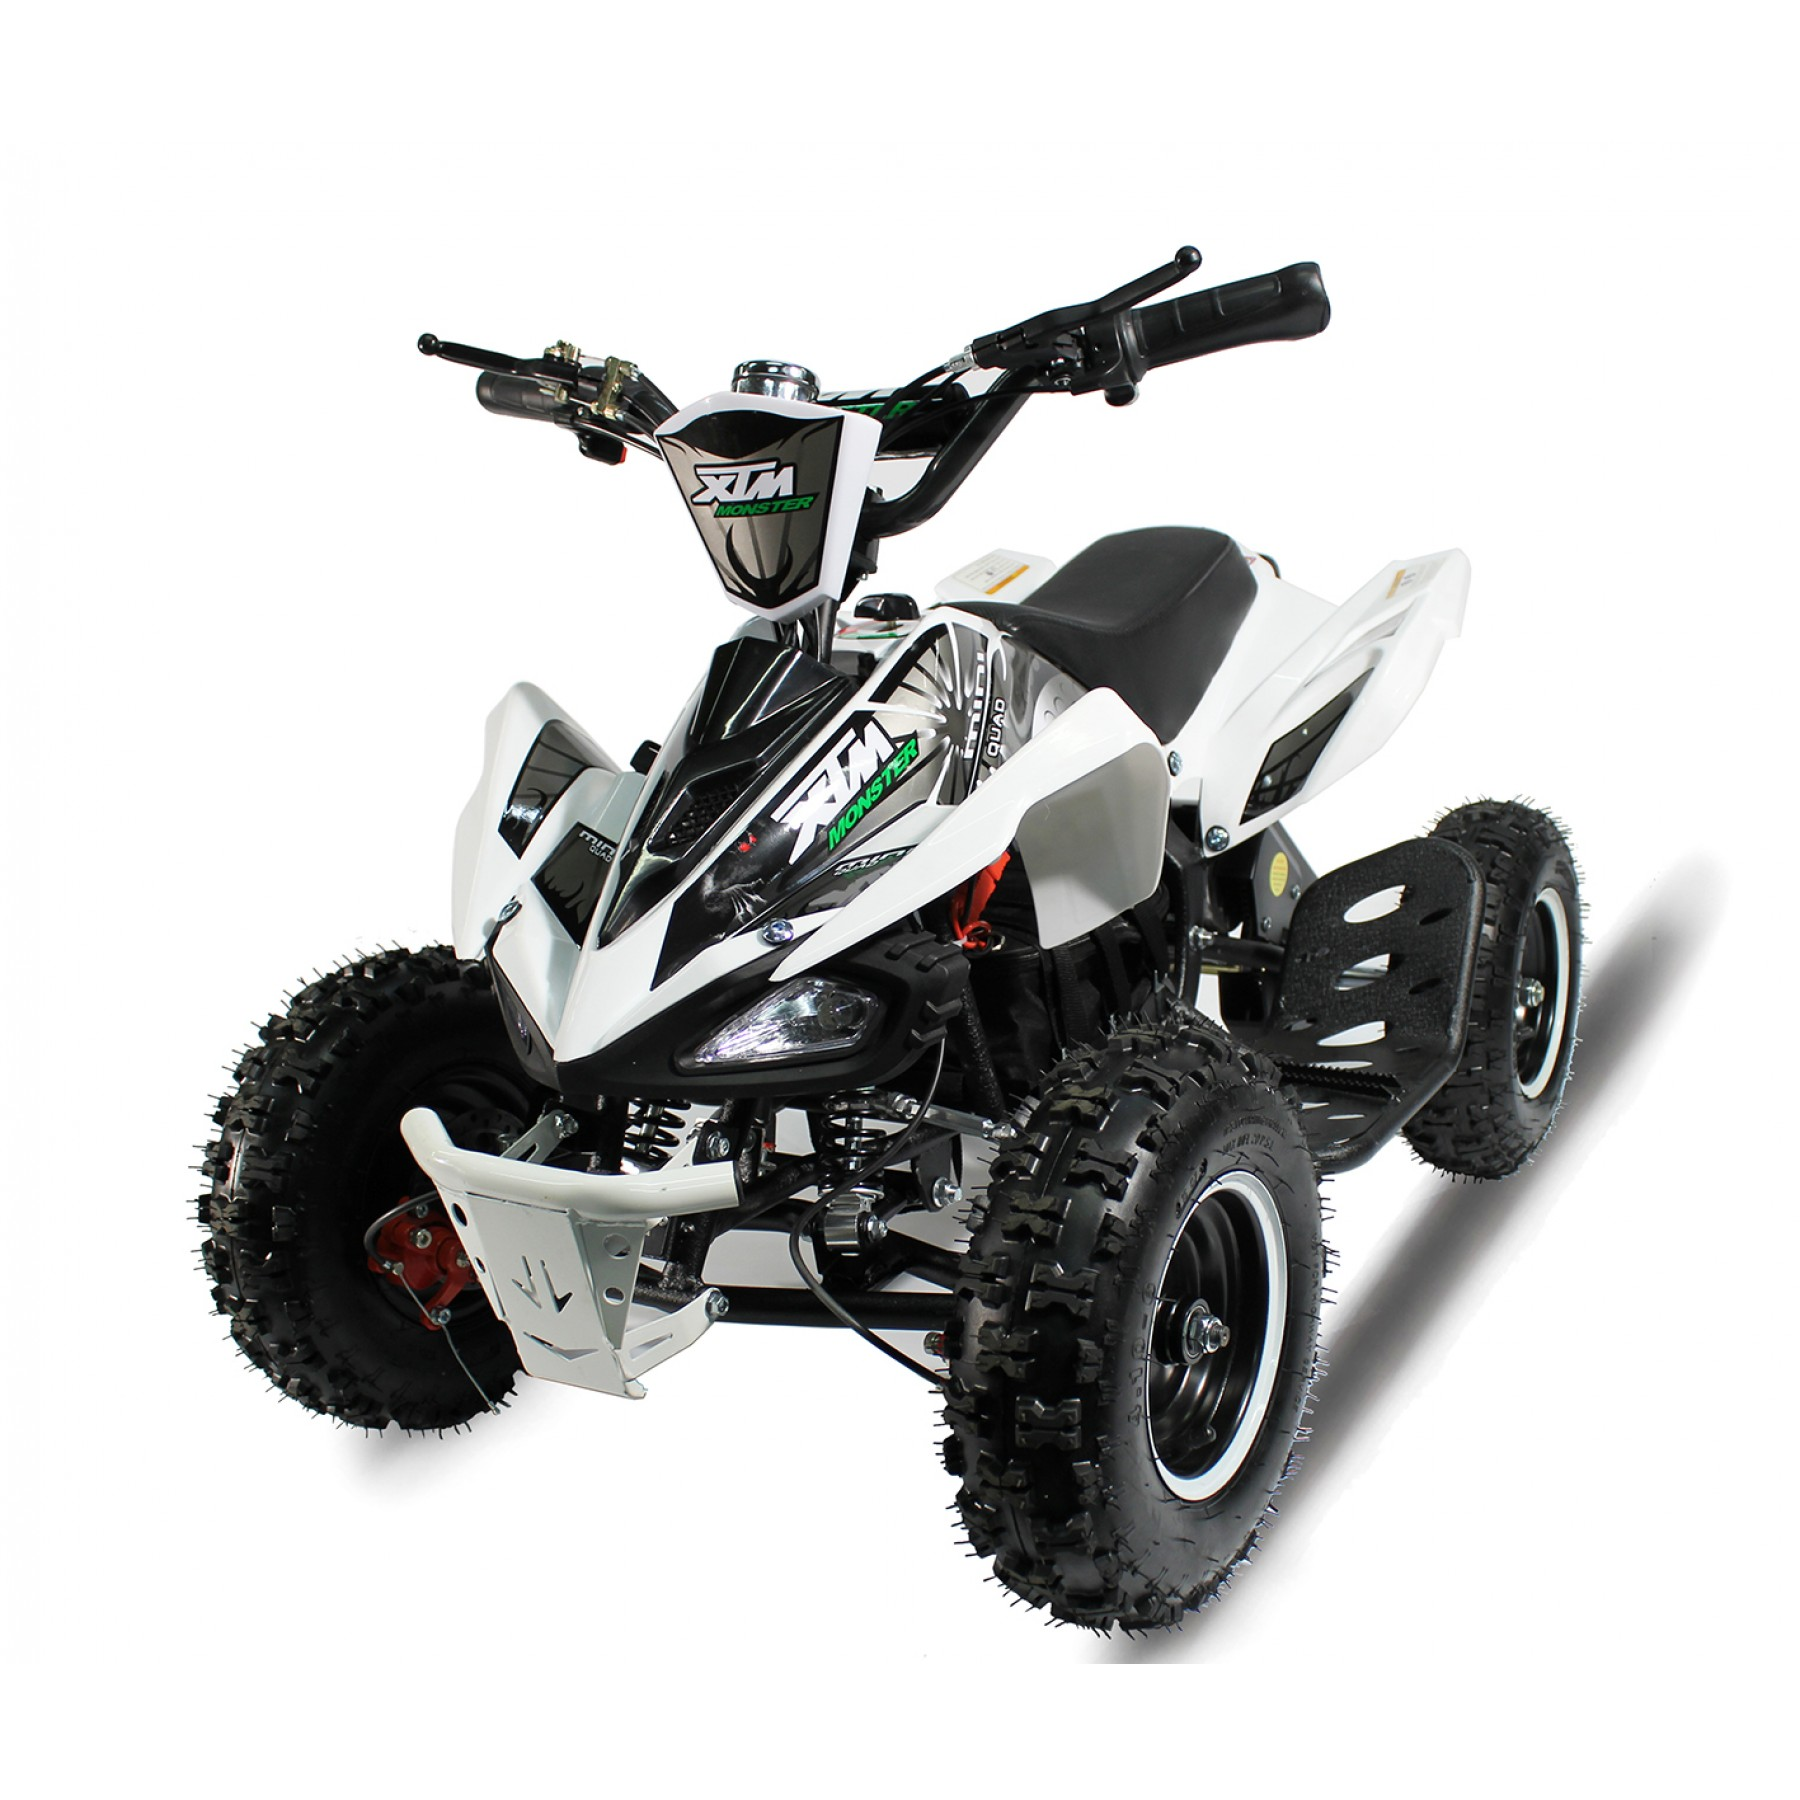 XTM MONSTER 36v 800w QUAD BIKE WHITE SILVER